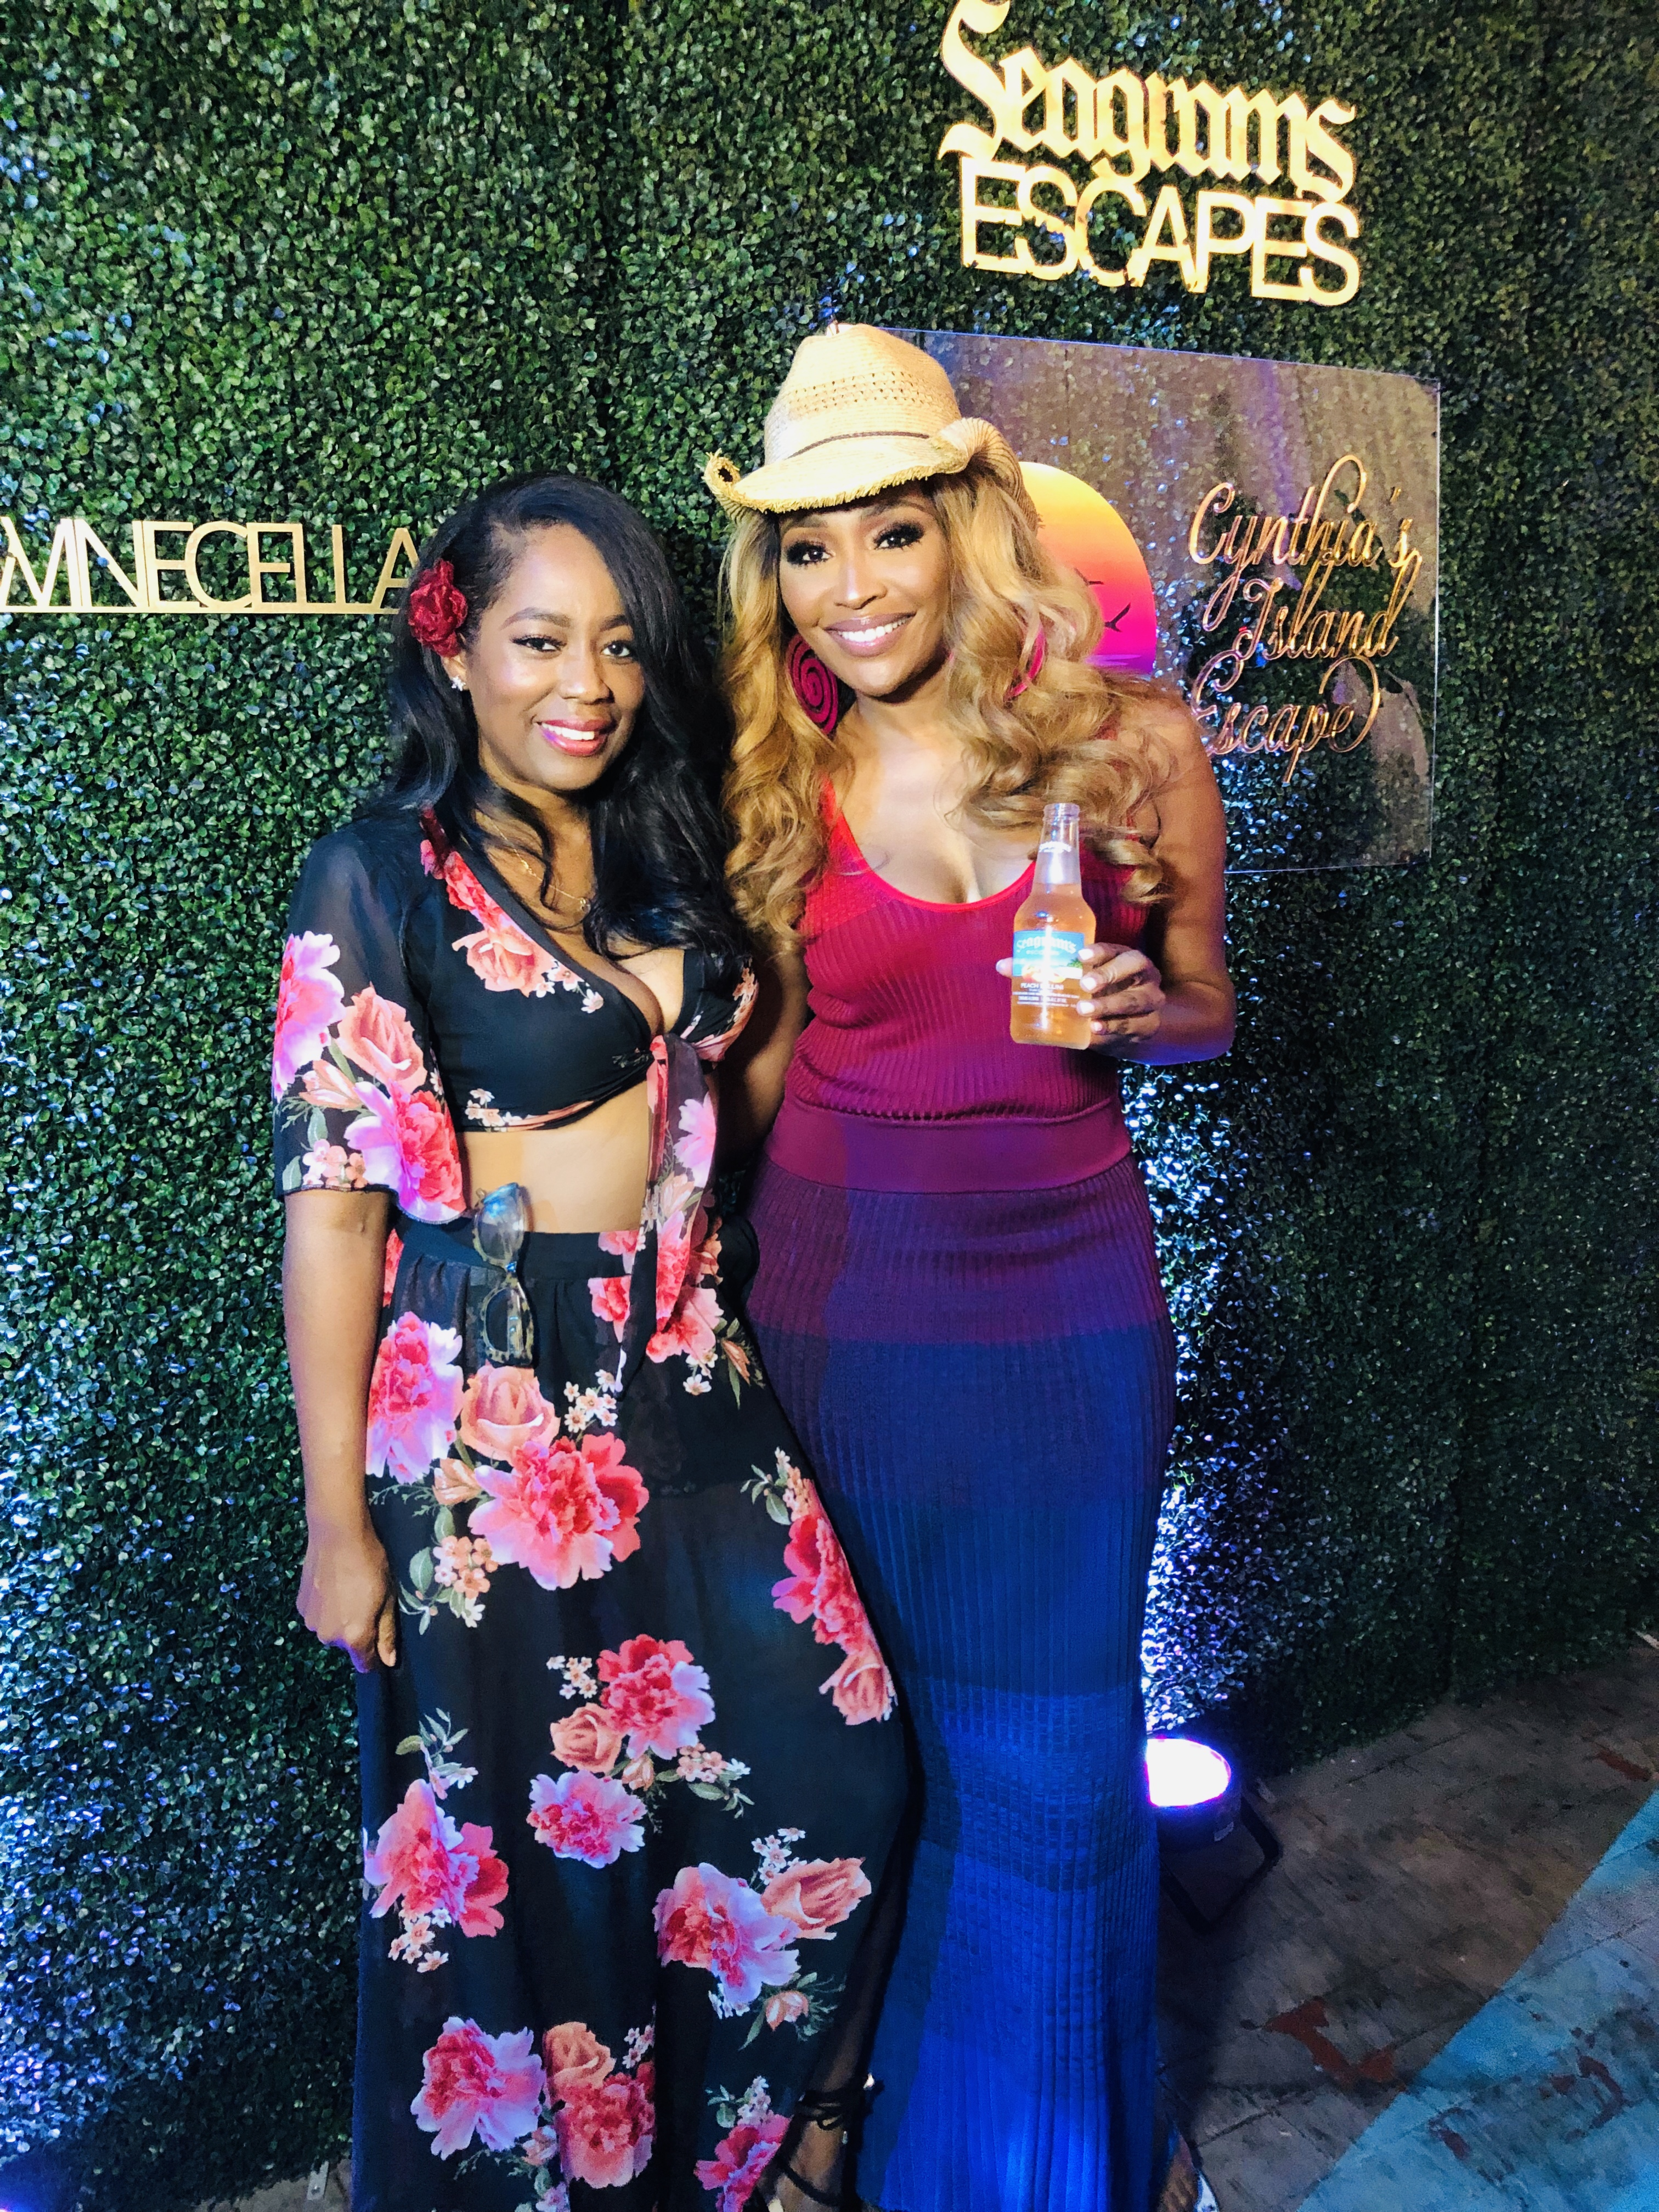 Cynthia Bailey's Seagram's Escapes Launch Party